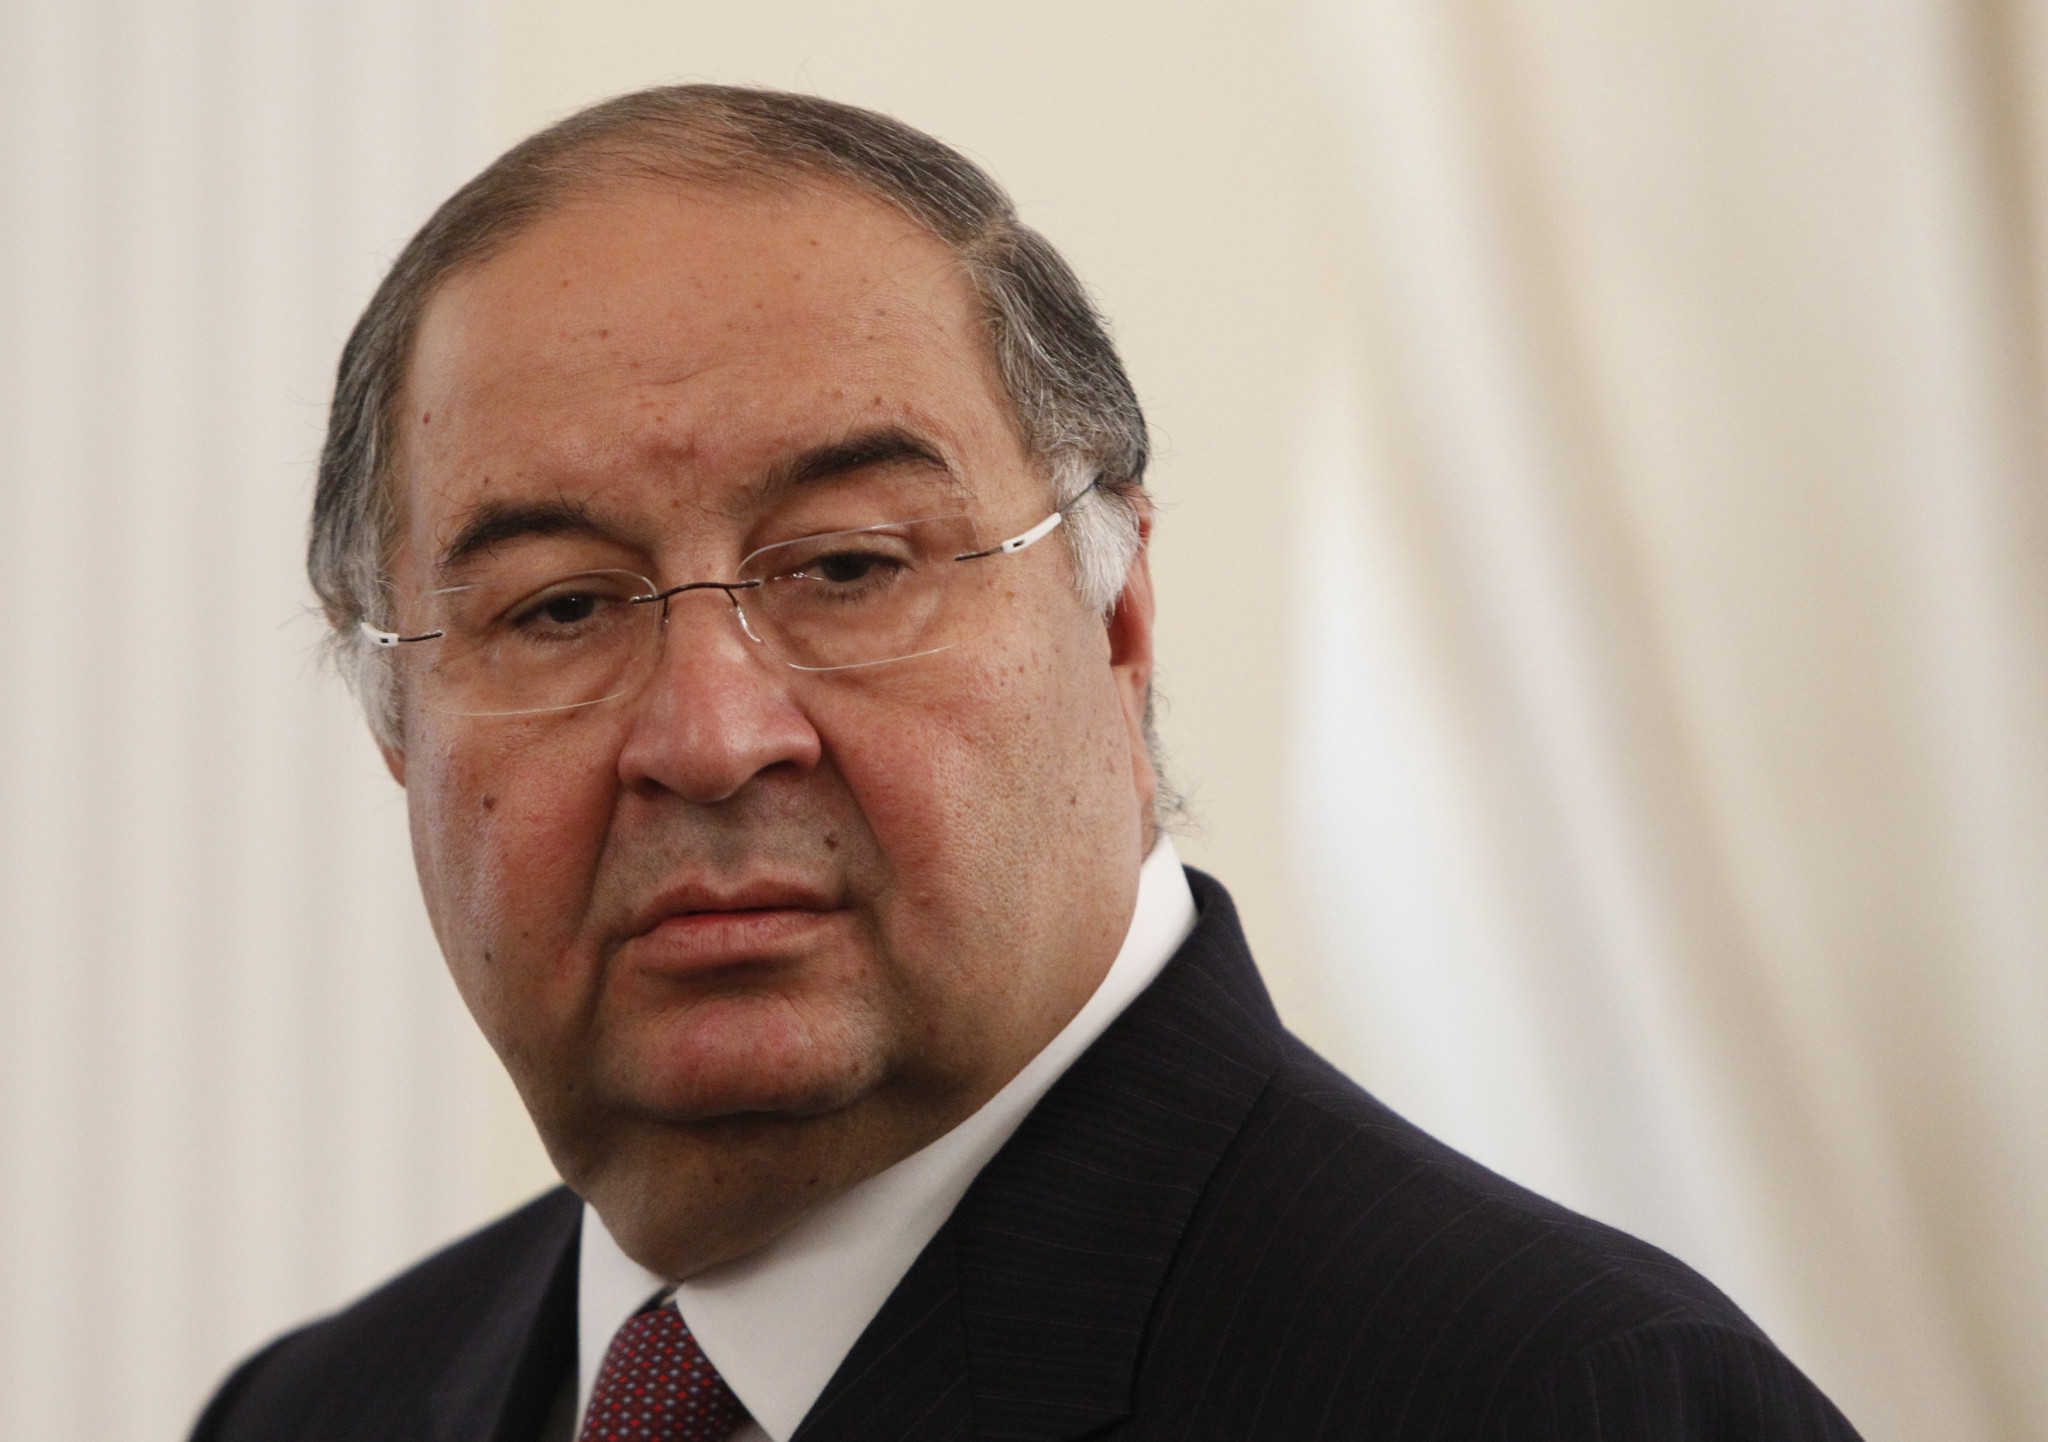 Politicians urge UK Government to sanction FIE President Usmanov